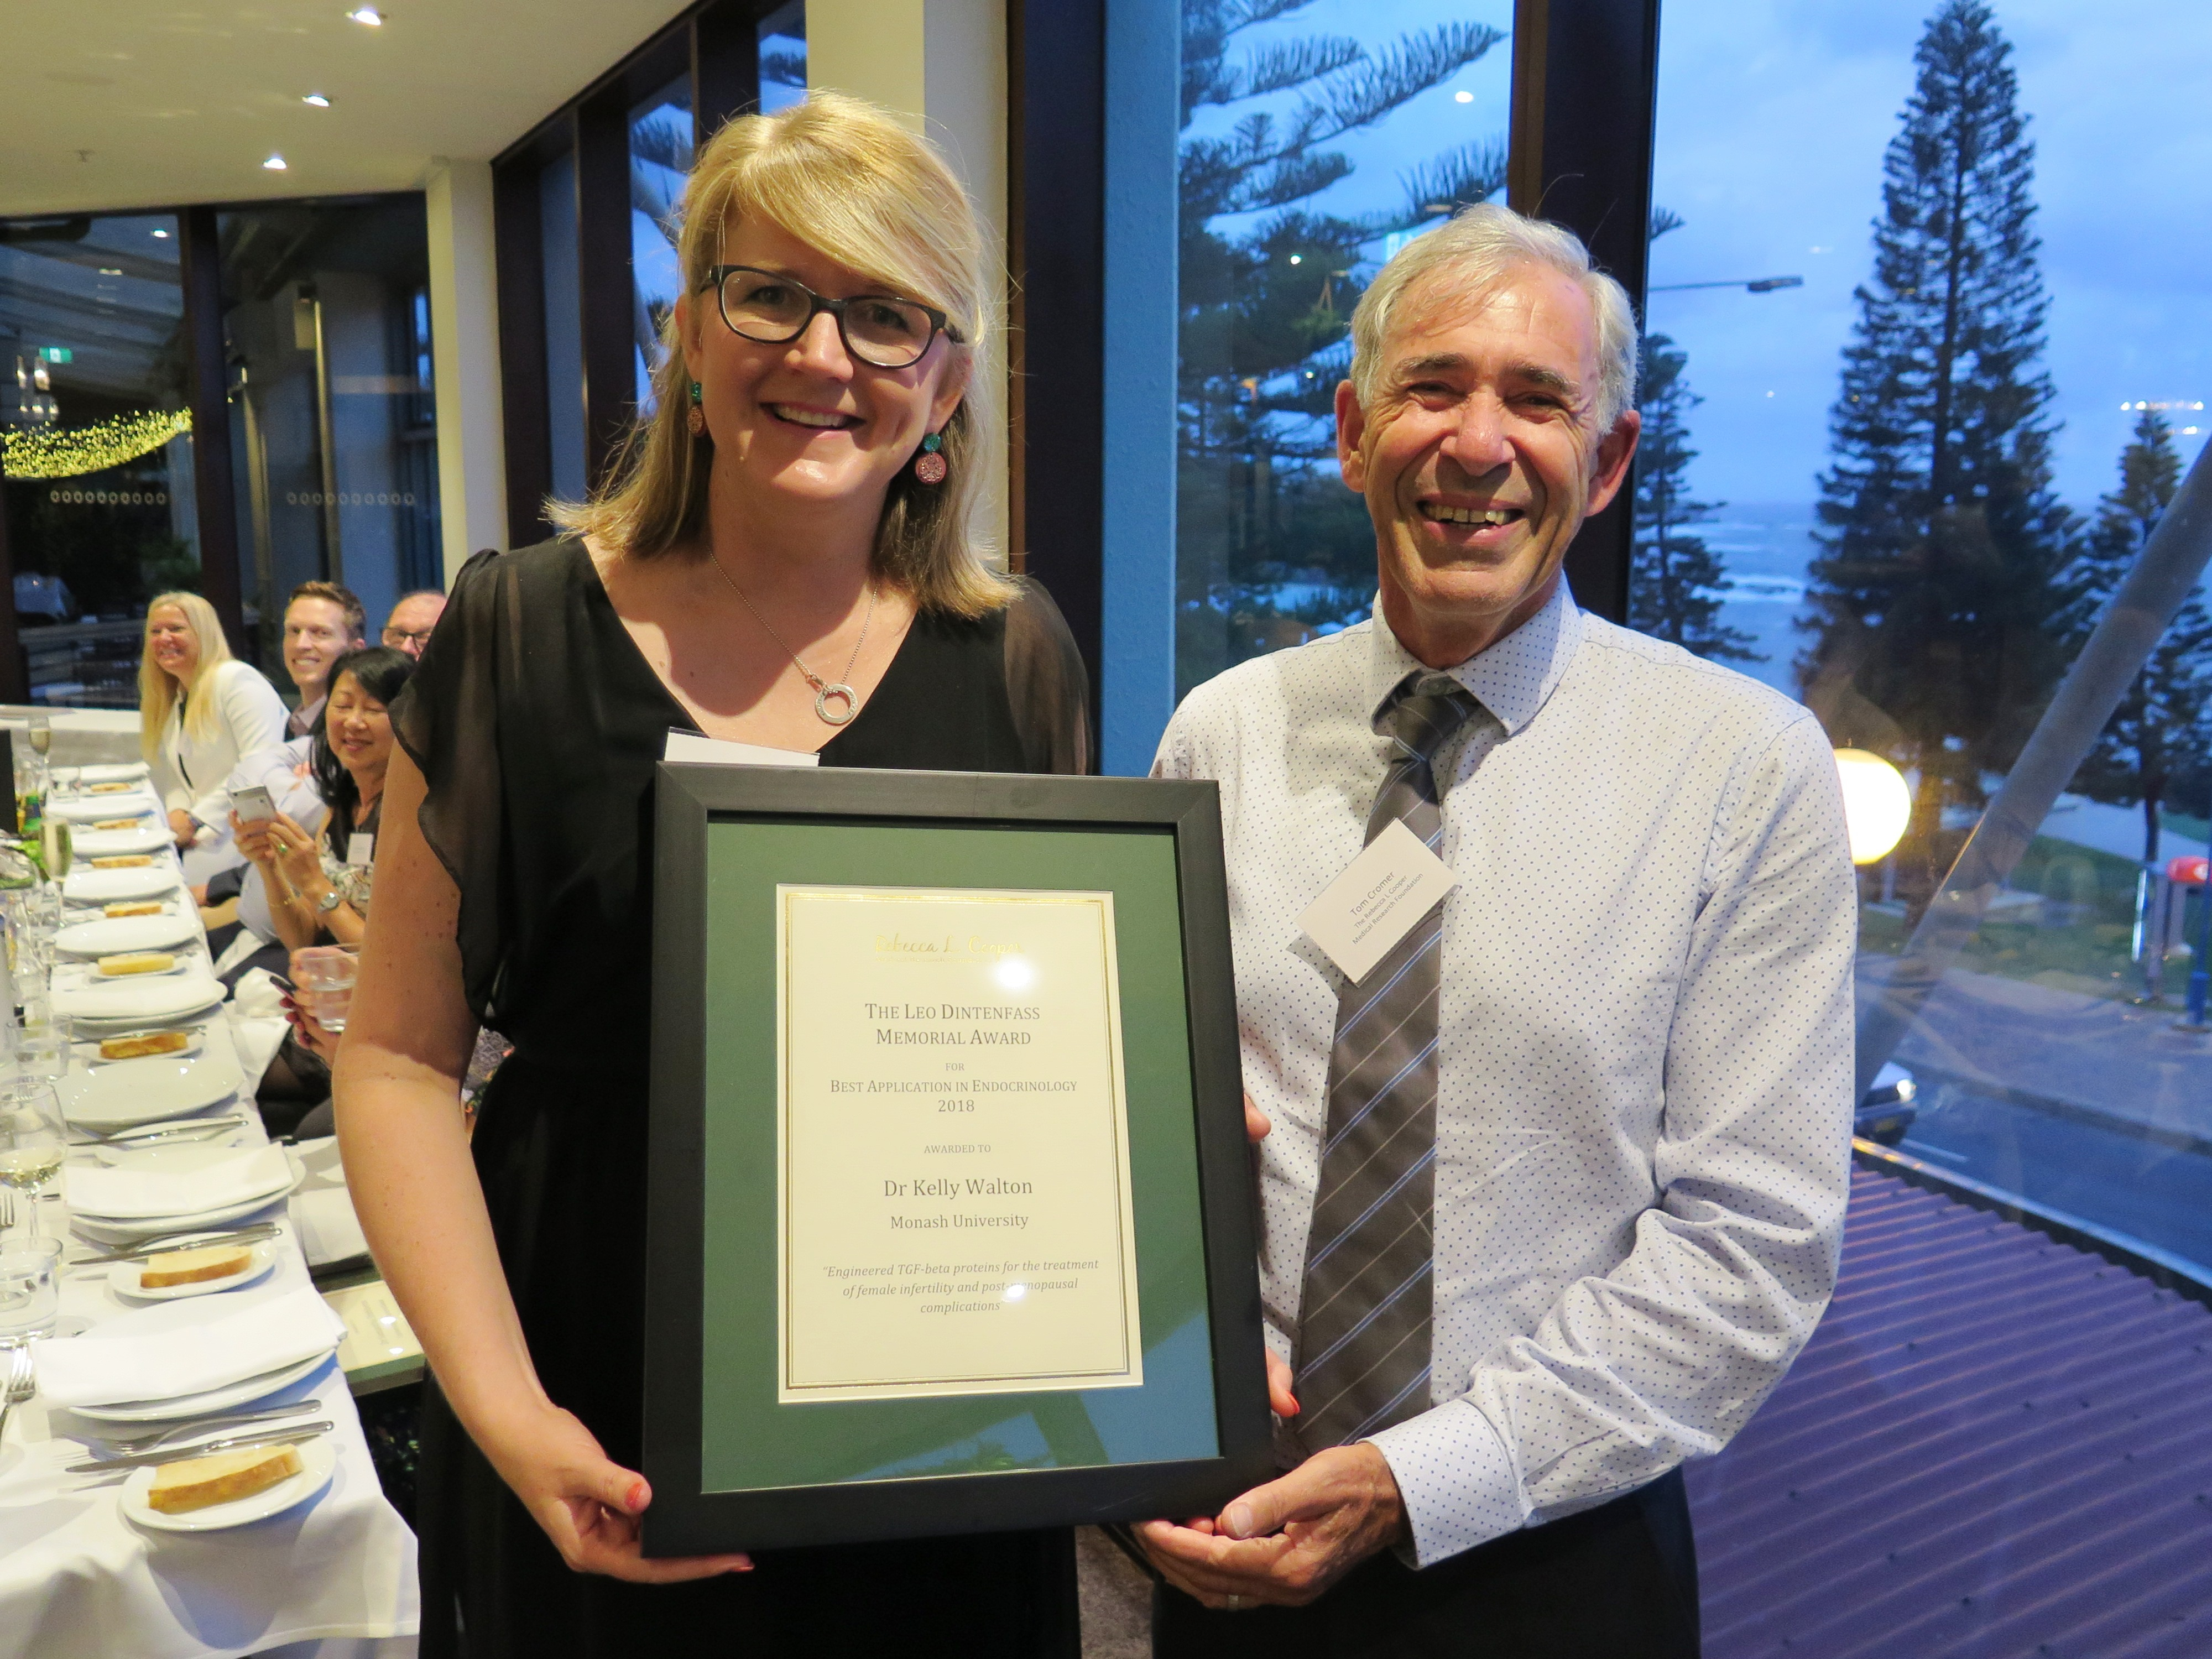 The Leo Dintenfass Memorial Award for Best Application in Endocrinology